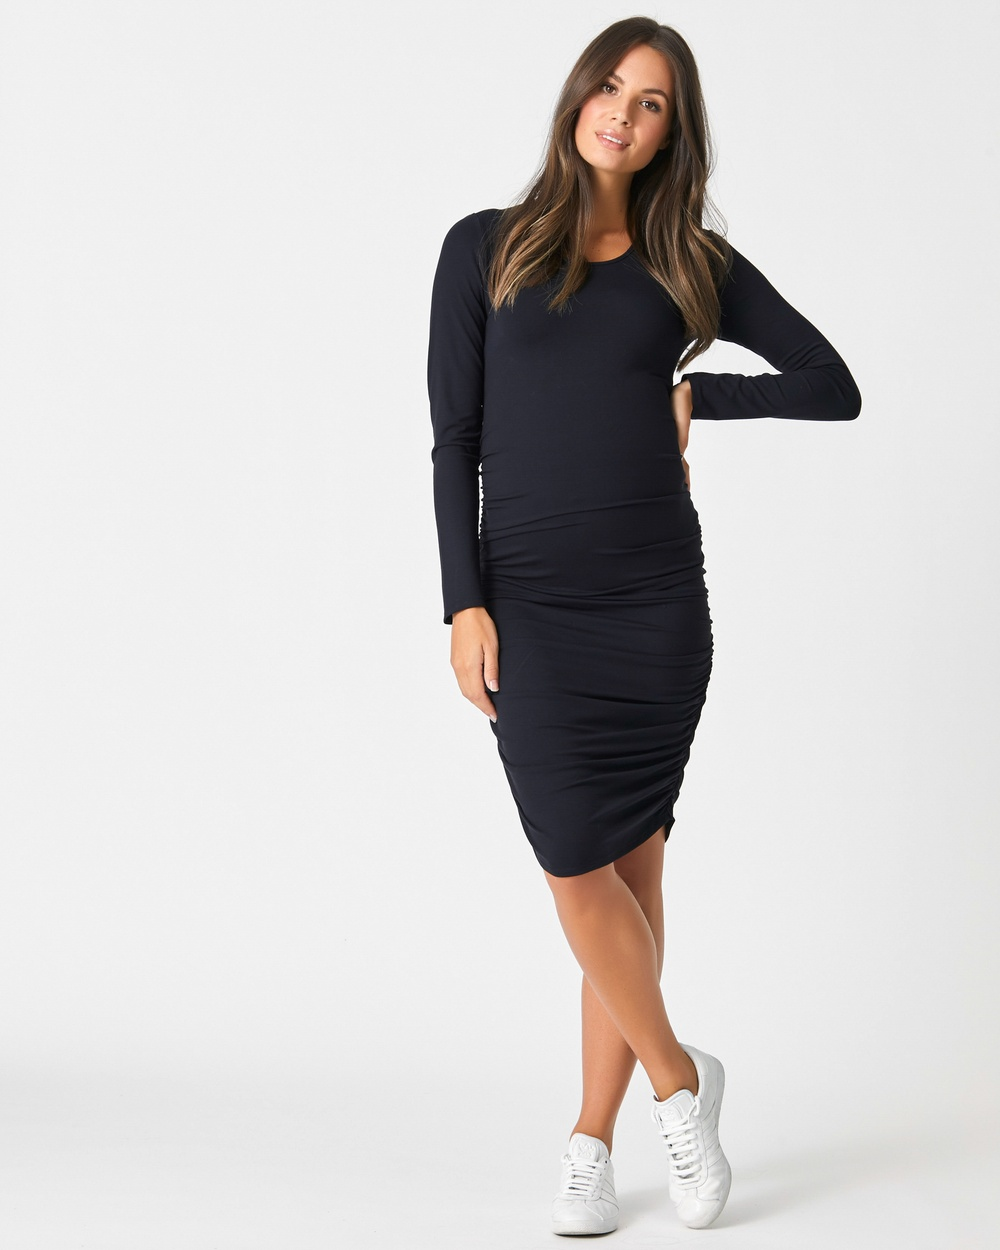 Pea in a Pod Maternity Bailey Gather Dress Bodycon Dresses Black Bailey Gather Dress